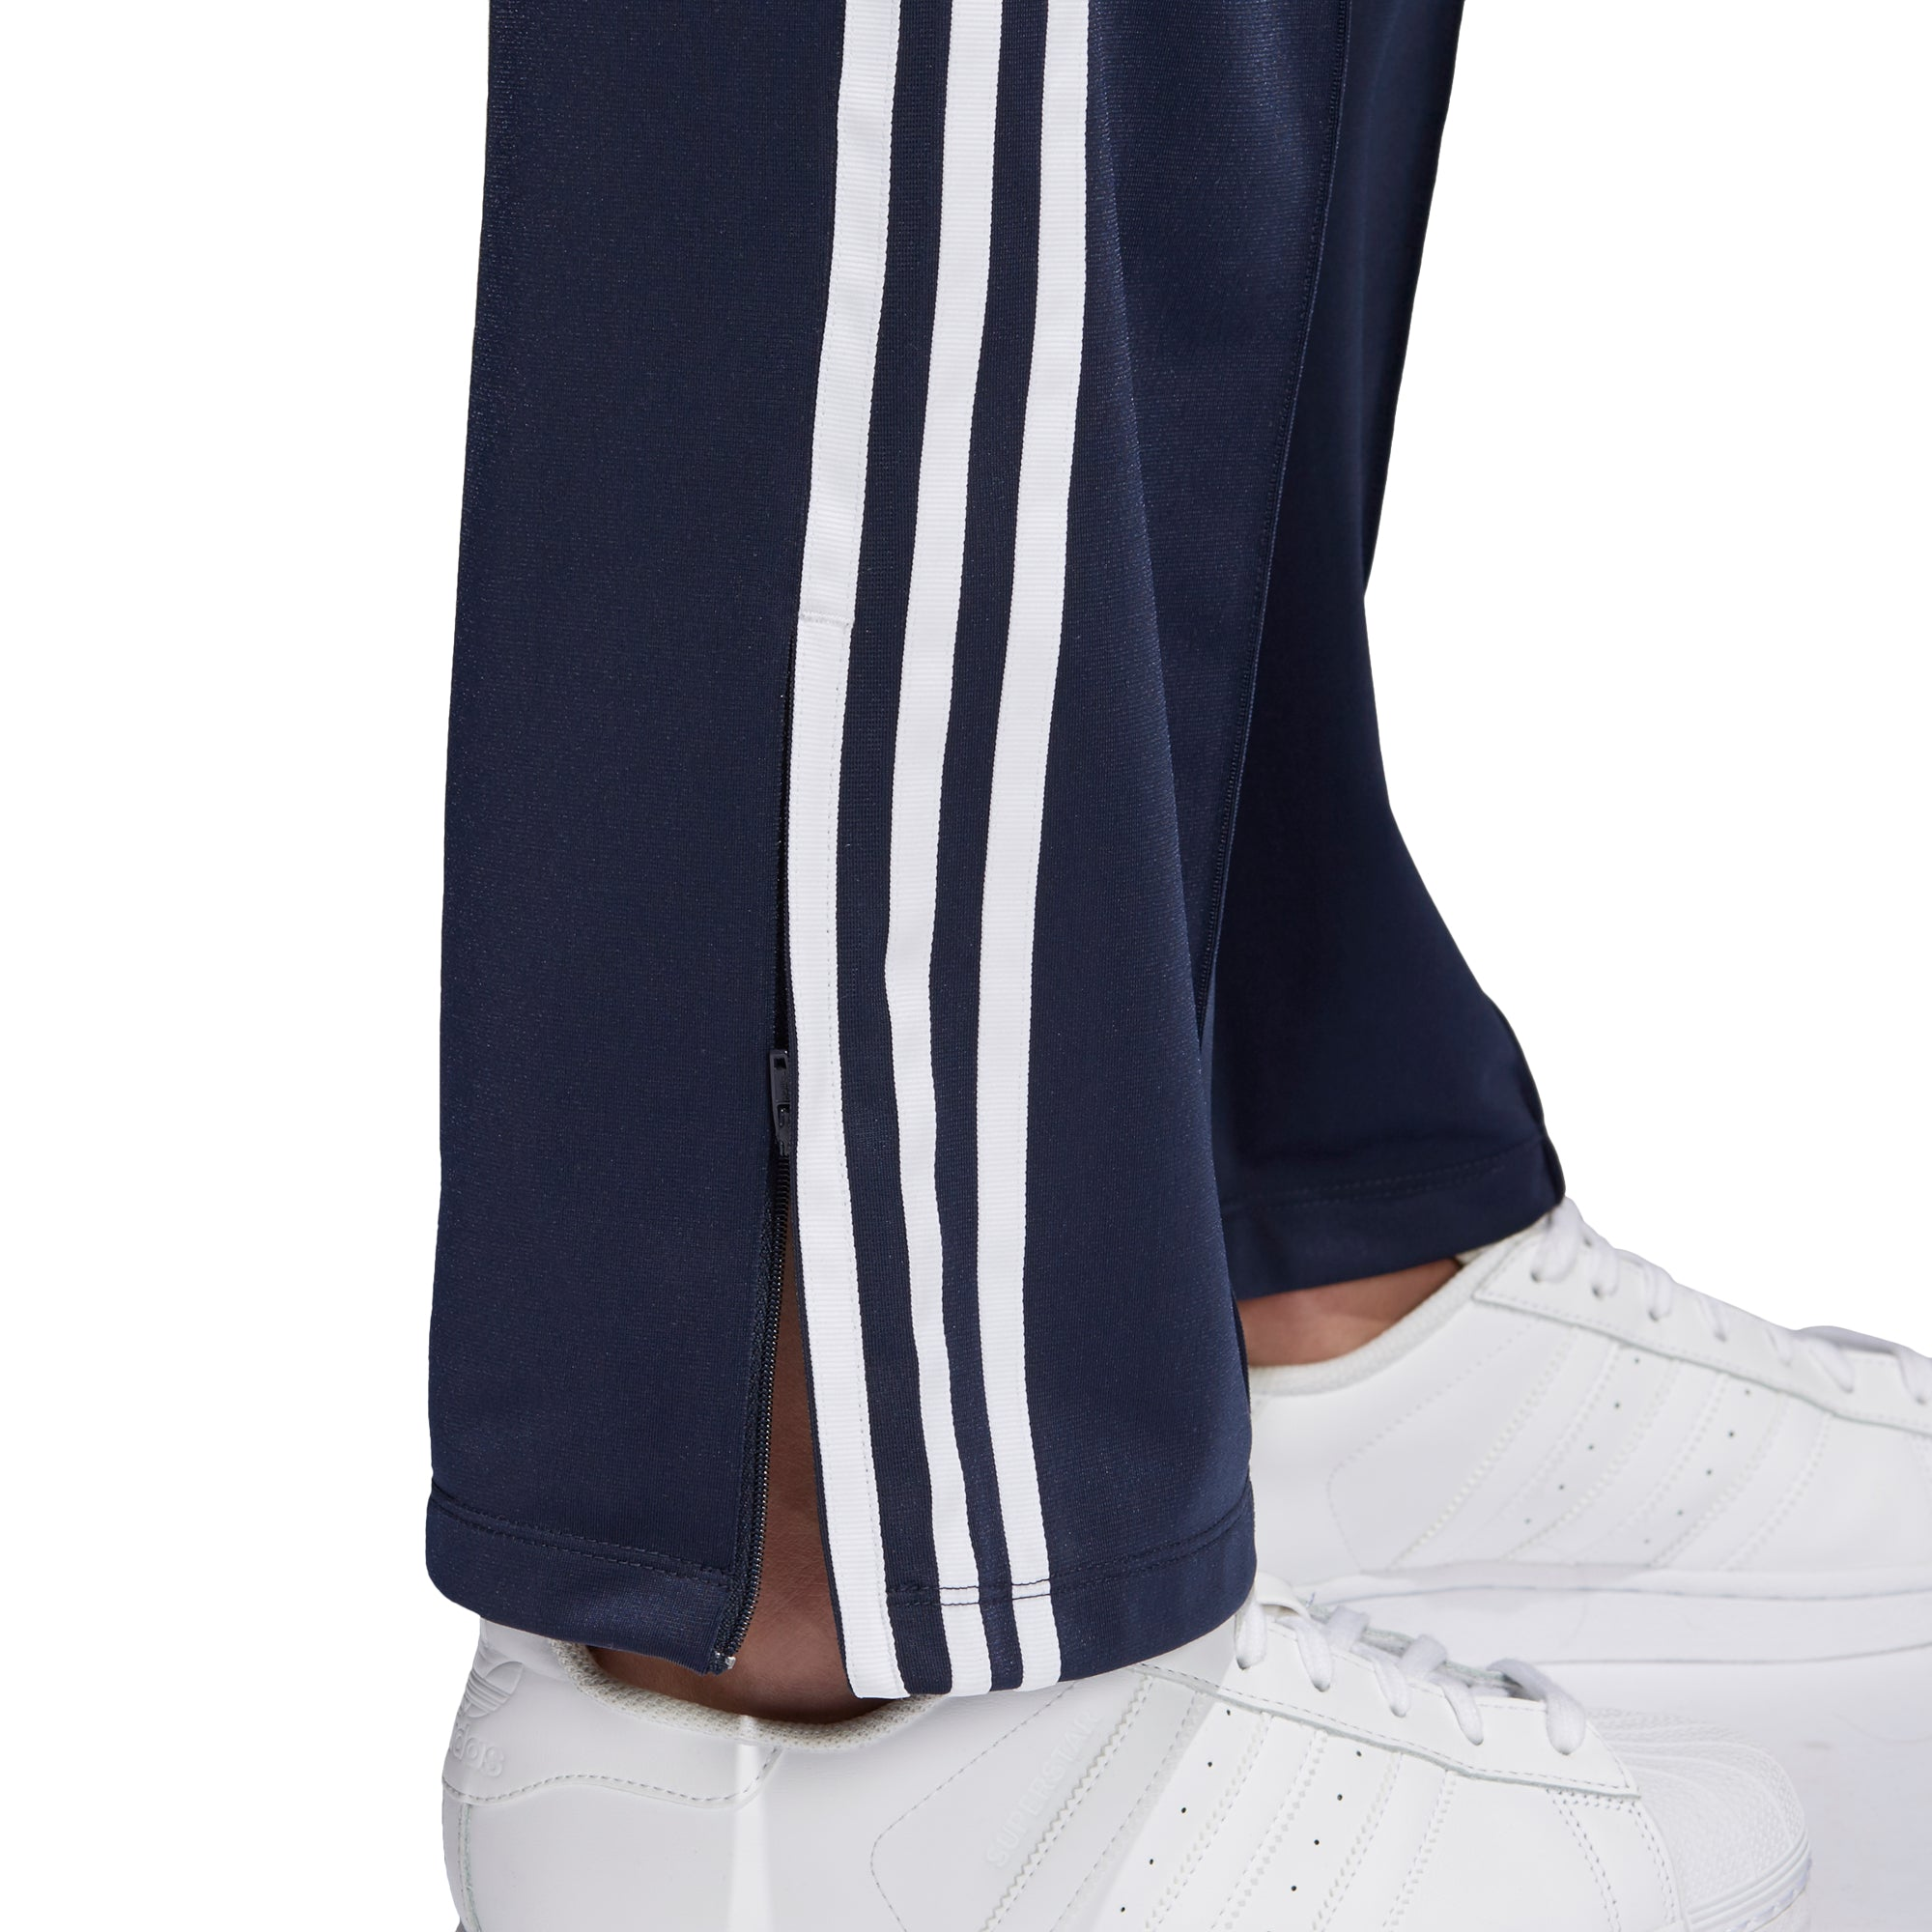 Sailor Pants adidas Originals